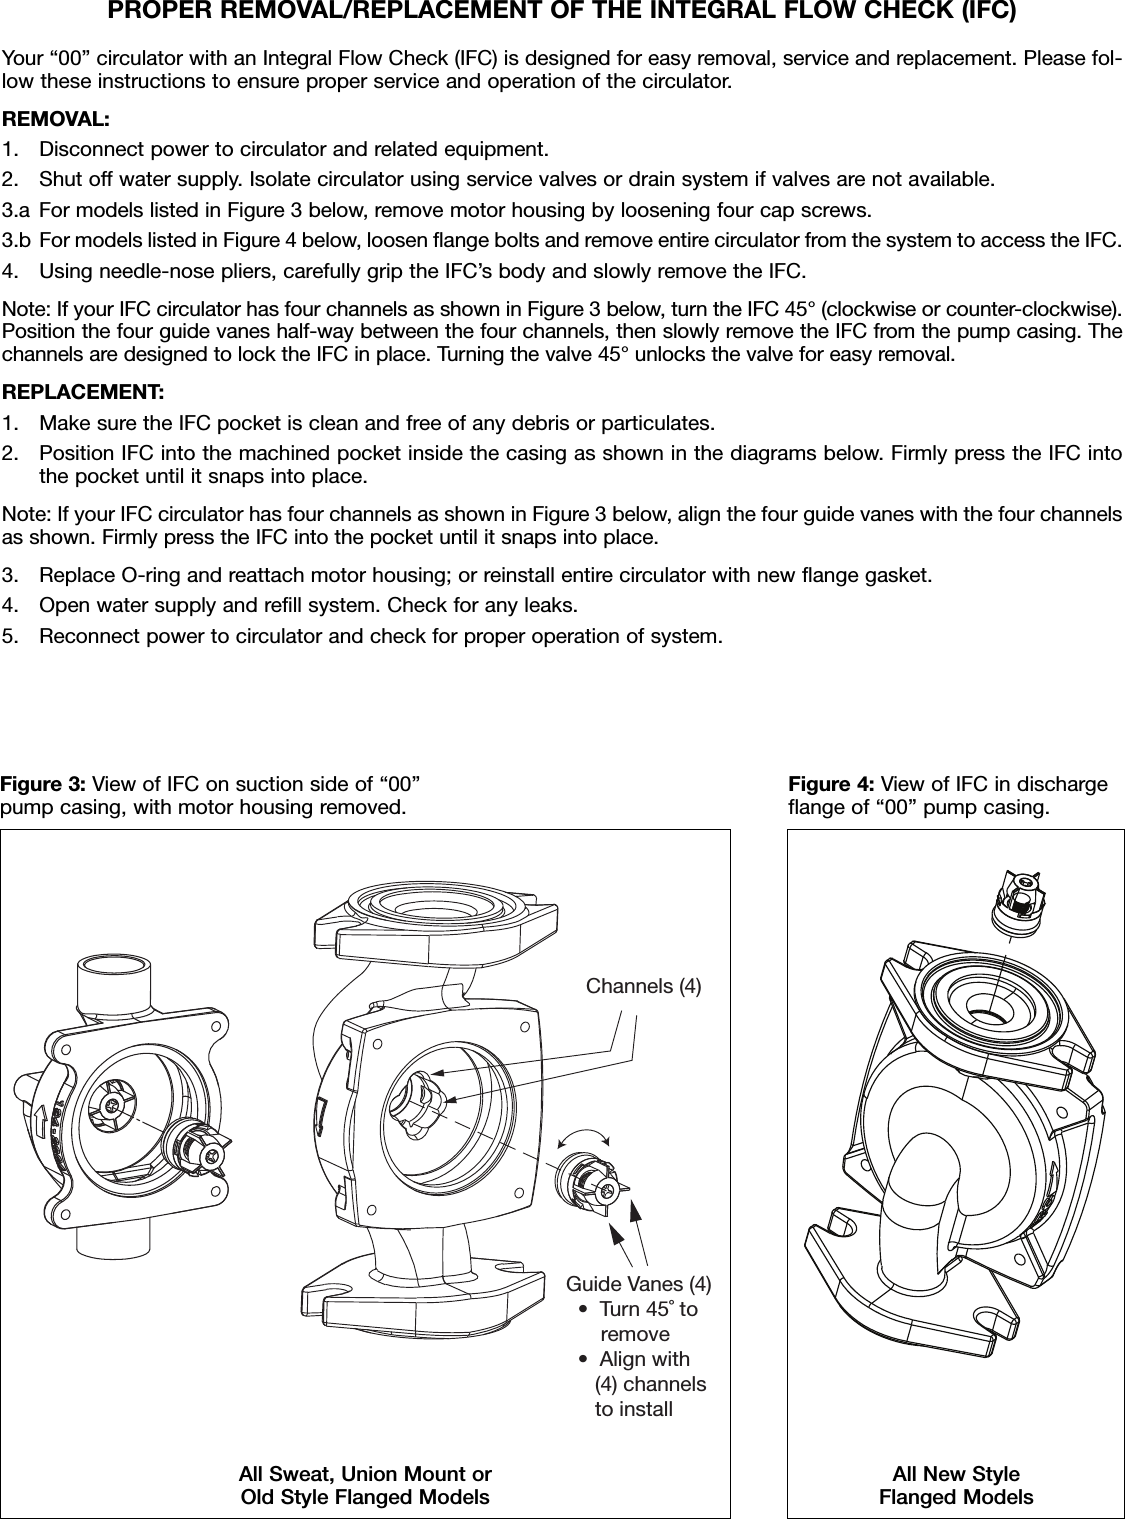 12590 4 Taco 0011 Sf4 Ifc Instructions Assem1 Sheet1 User Manual Wiring Diagram Sf5 Page 3 Of